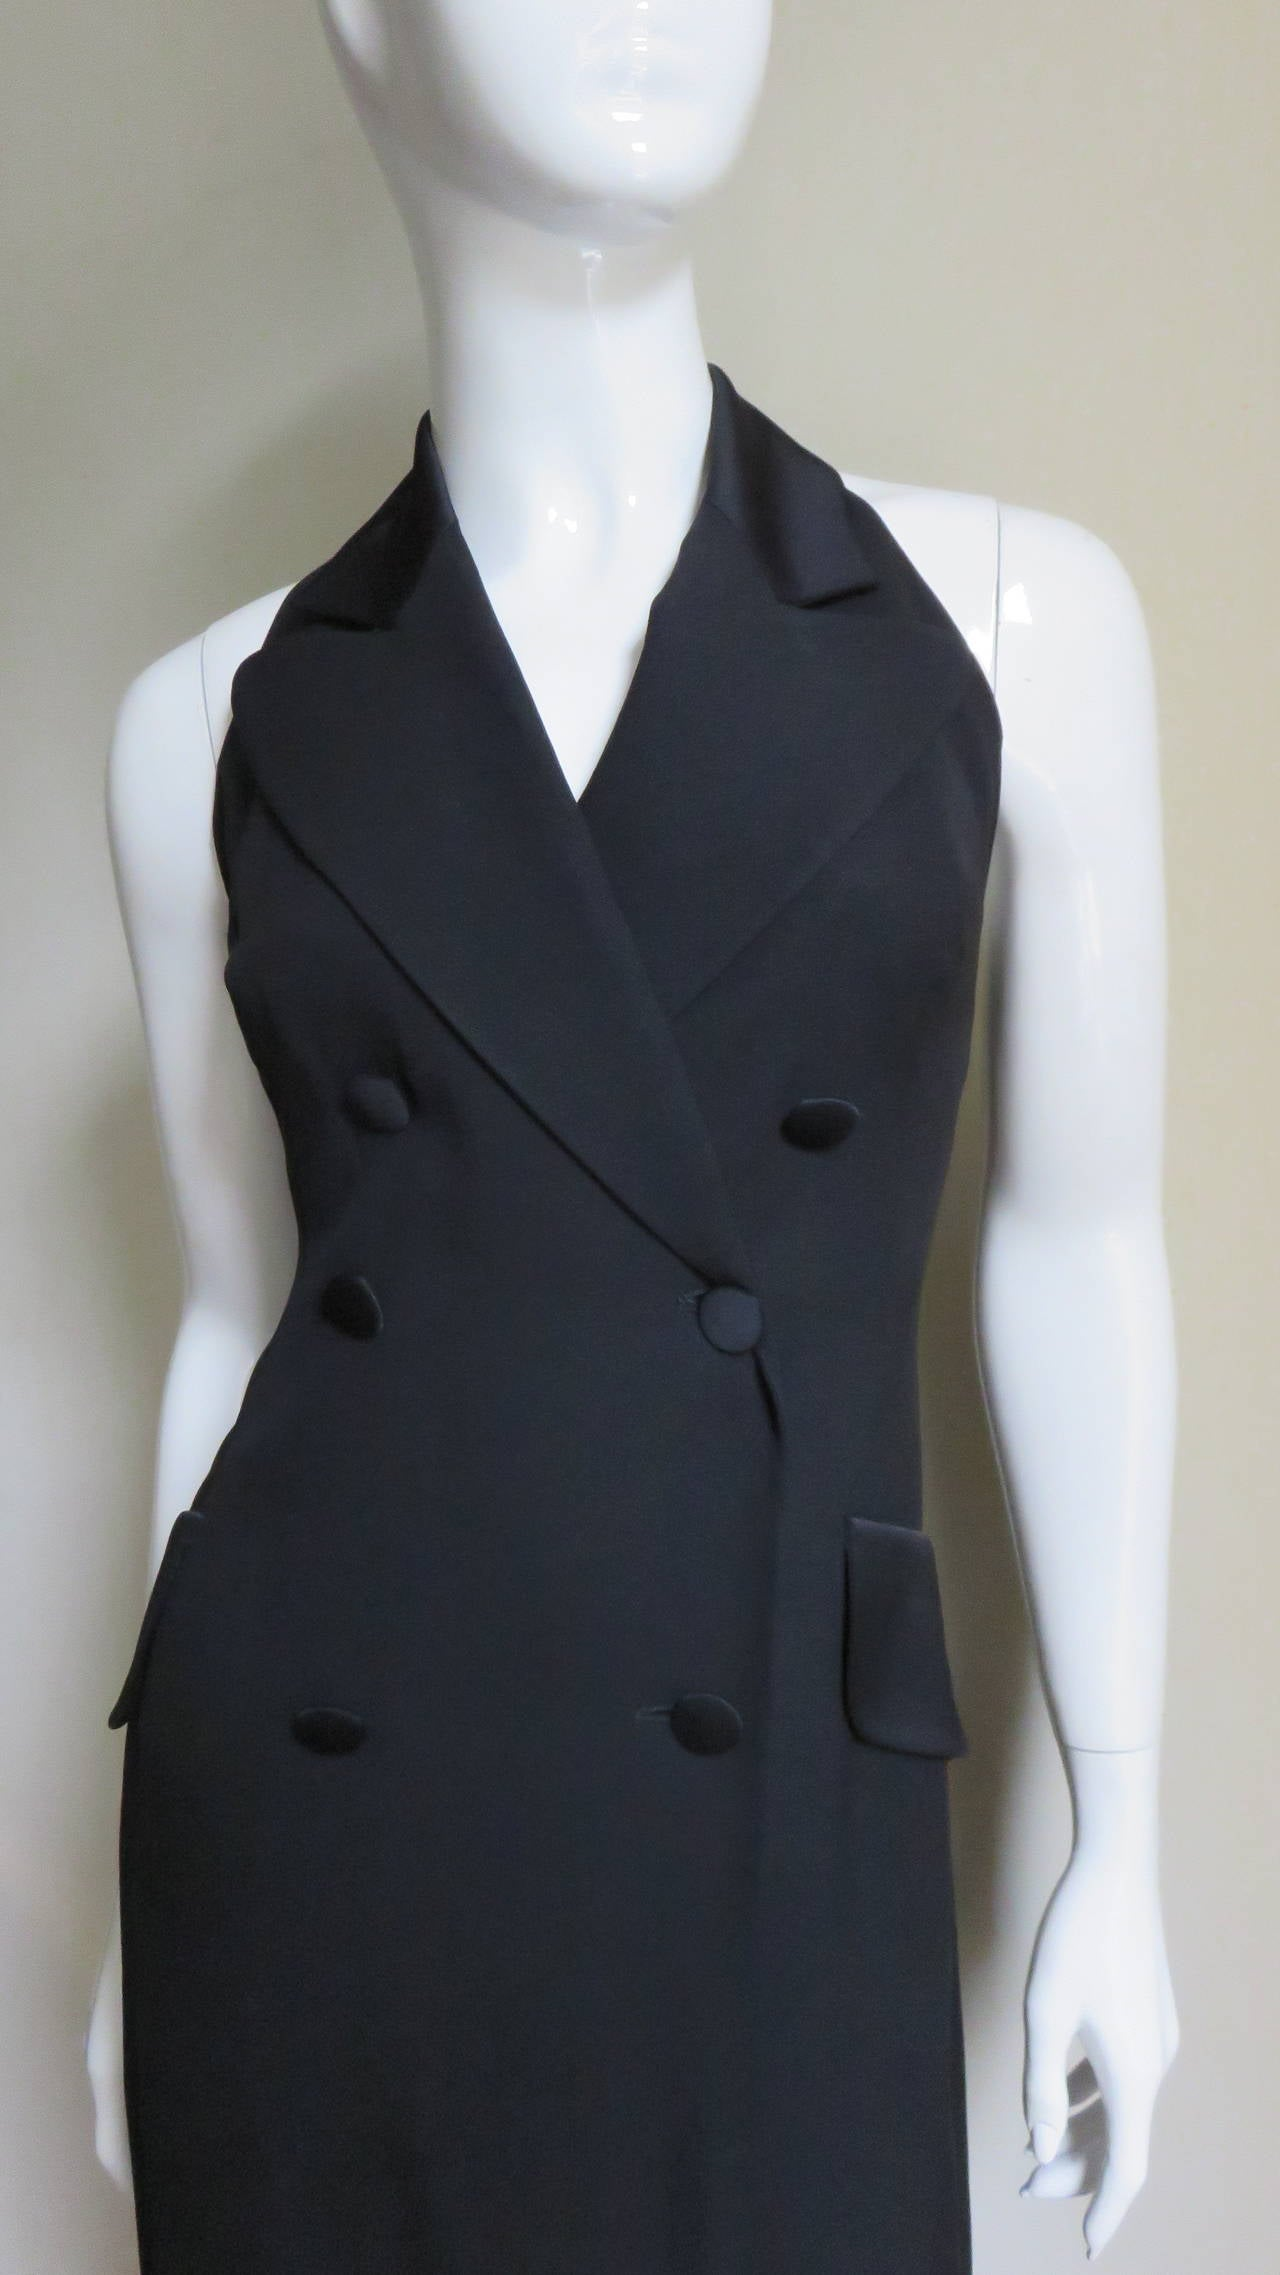 A fabulous black halter tuxedo jumpsuit in crepe back satin.  It is a double breasted jacket style bodice with 6 buttons matching the satin peak lapels and pocket flaps.  It is fitted through the waist with princess seaming.  The lower portion